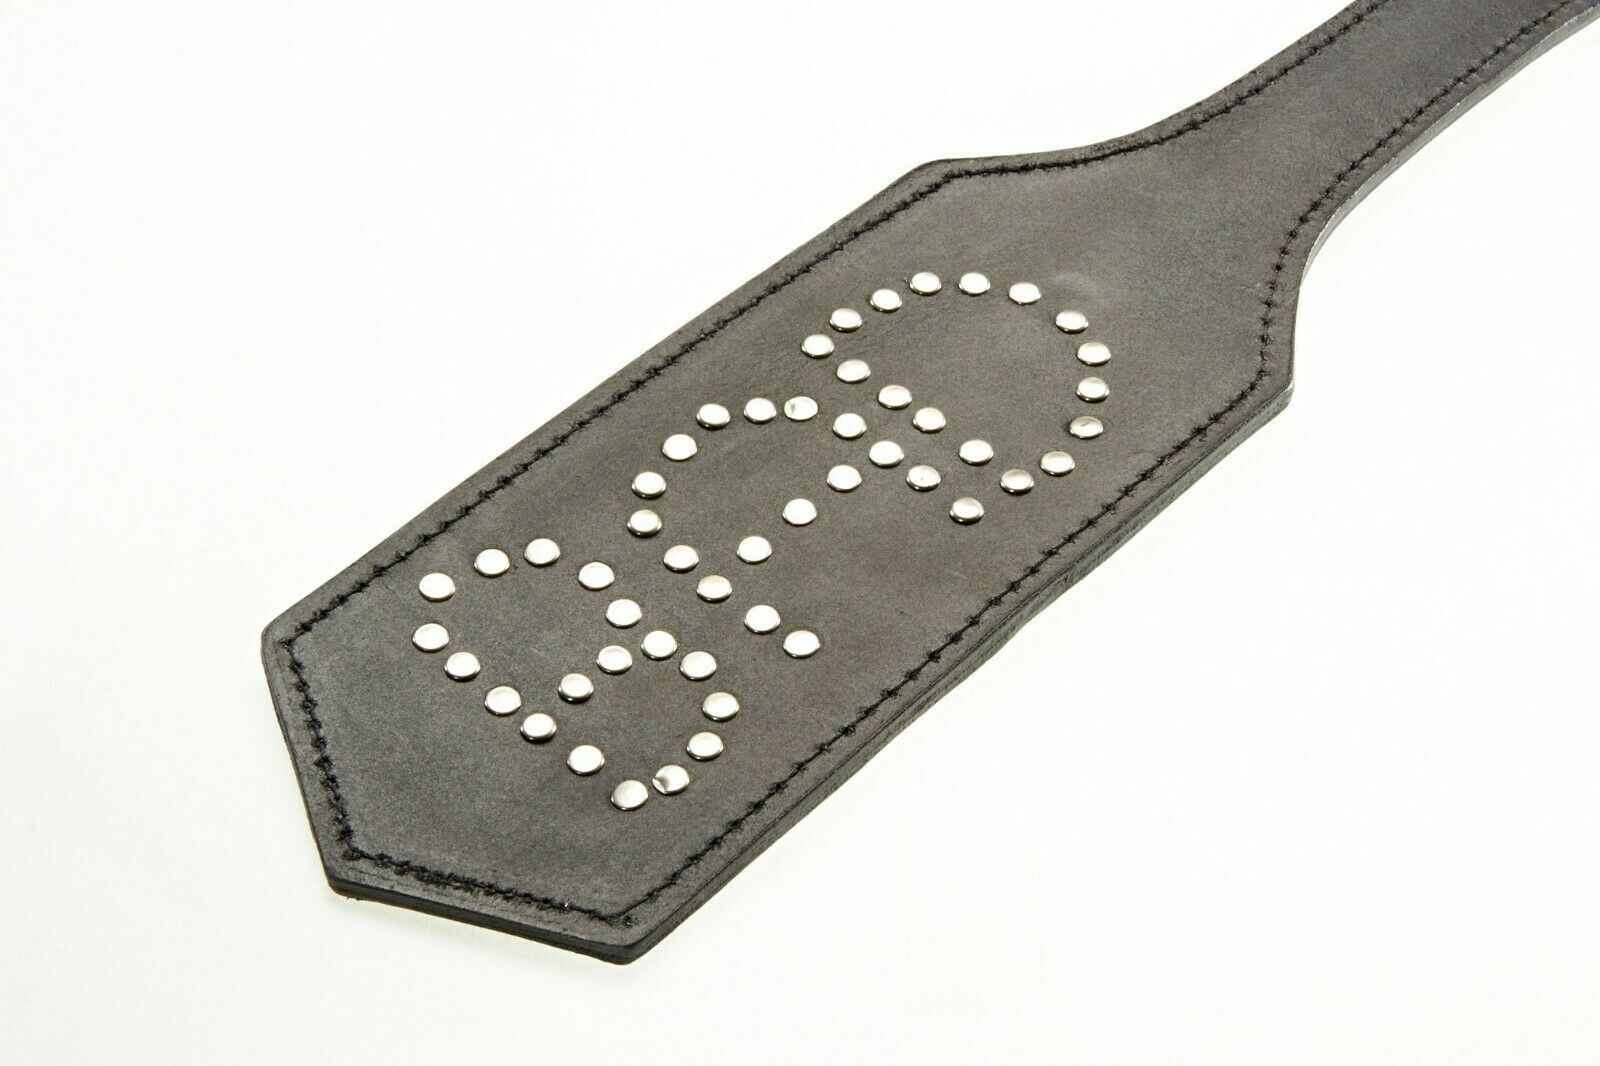 Quality Handmade Strict Leather Paddle Spanker With Metal Studs. Leather Paddle.